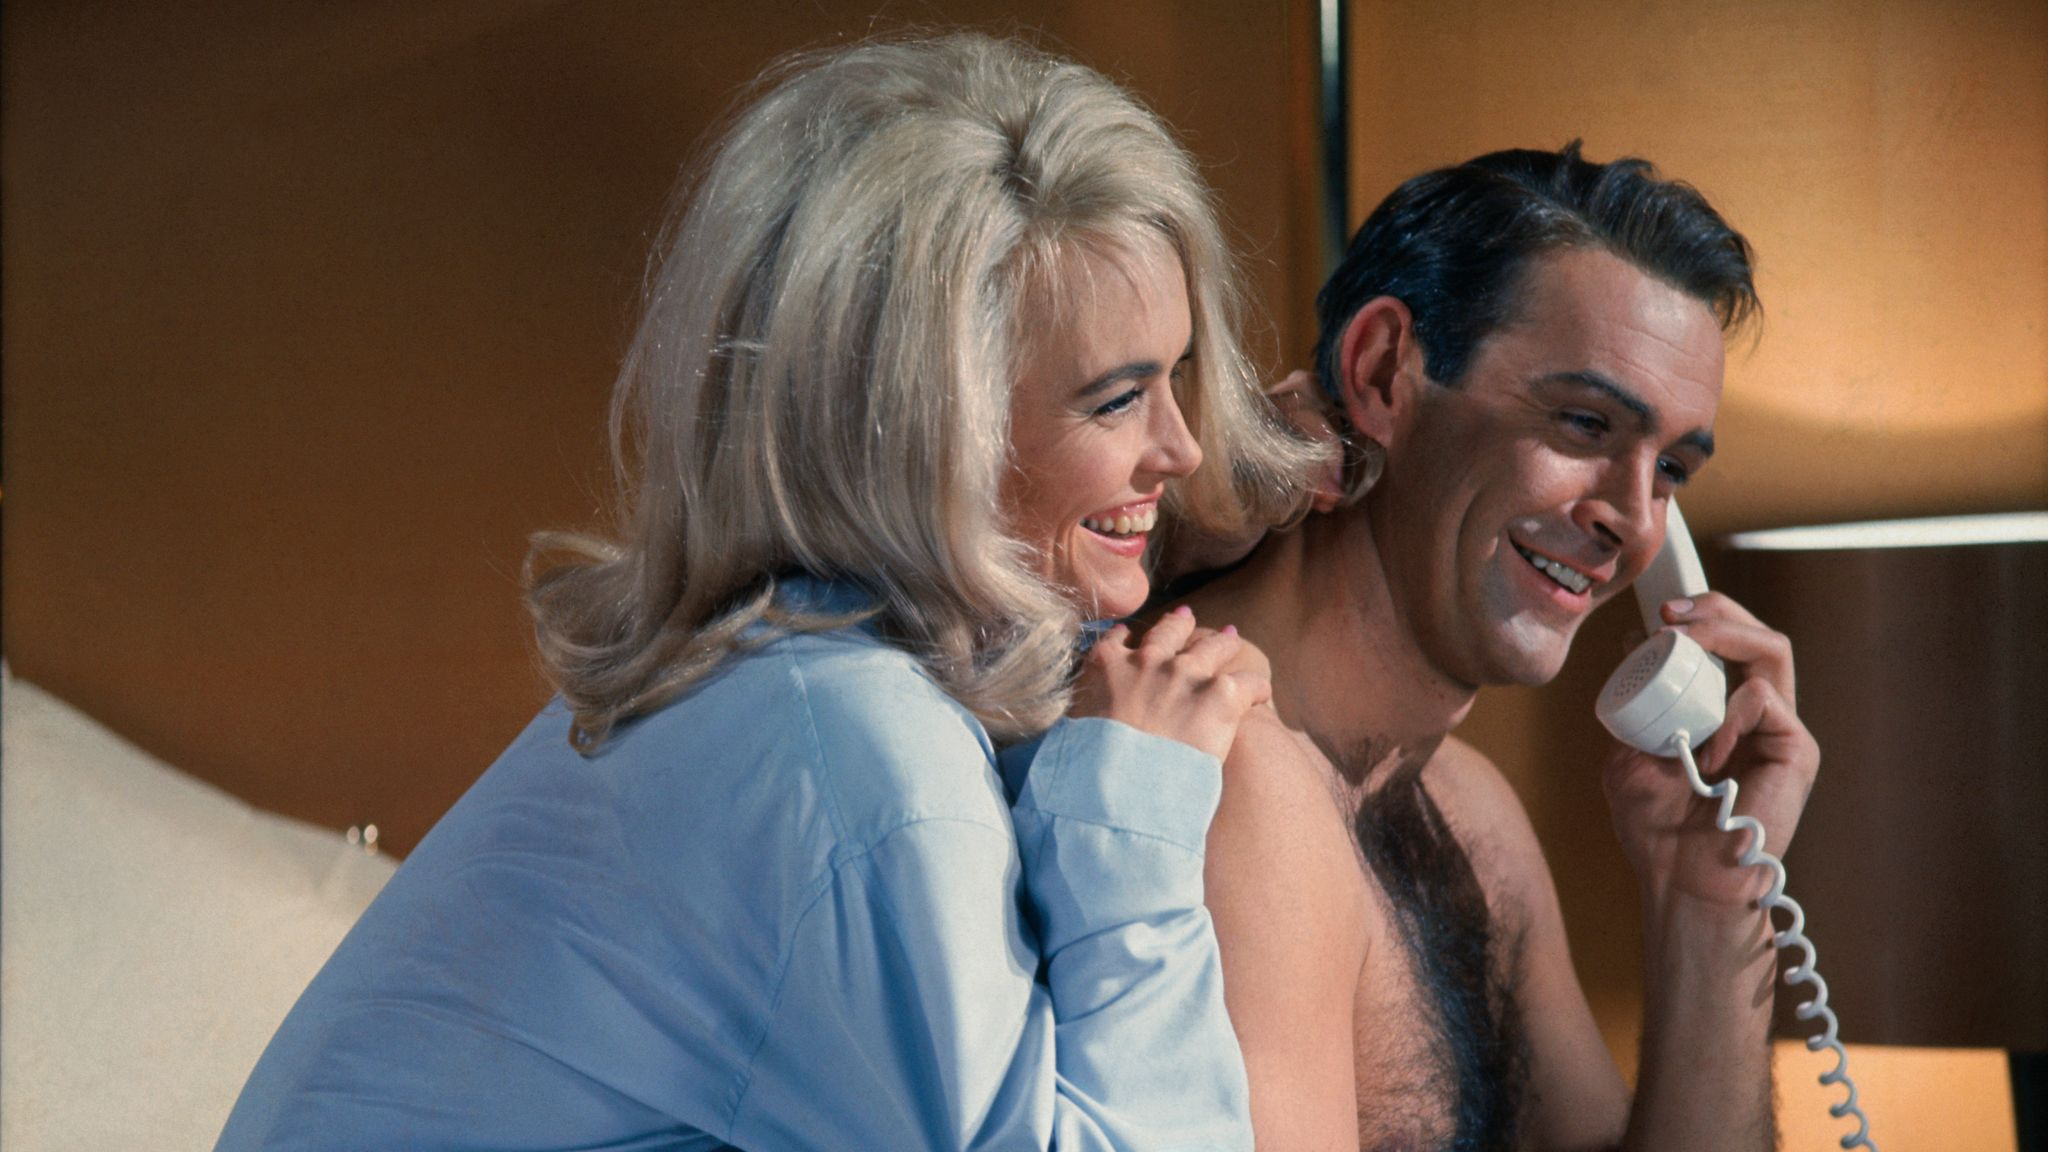 Sean Connery and Jill Masterson (Original Caption) James Bond (Sean Connery) and Jill Masterson (Shirley Eaton) share a laugh on the phone in the James Bond flick, Goldfinger. 1964.